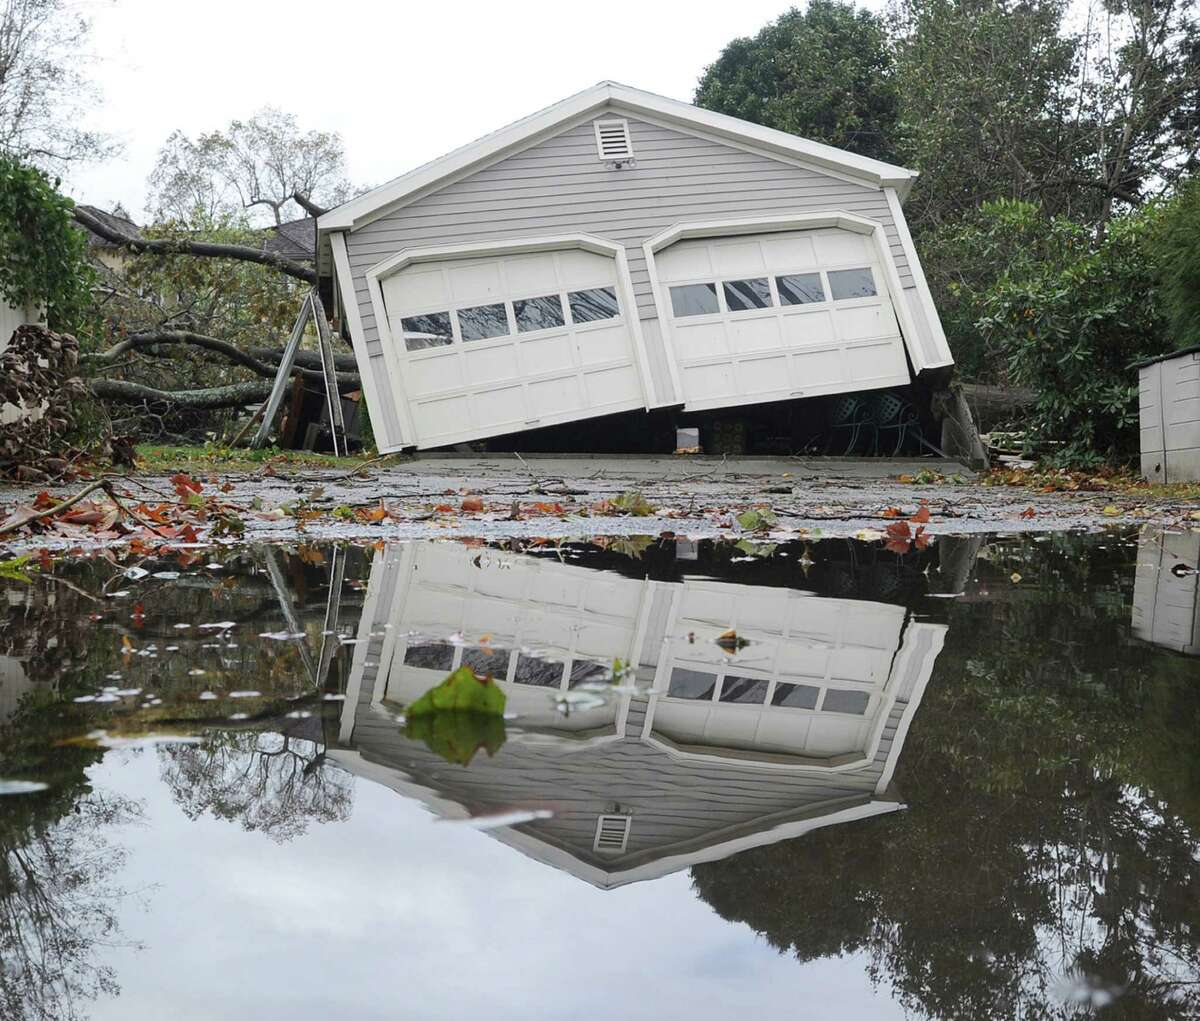 A garage off its foundation on Binney Lane during the aftermath of Hurricane Sandy in Old Greenwich, Tuesday, Oct. 30, 2012. Click through for more scenes from Superstorm Sandy's path through Connecticut.